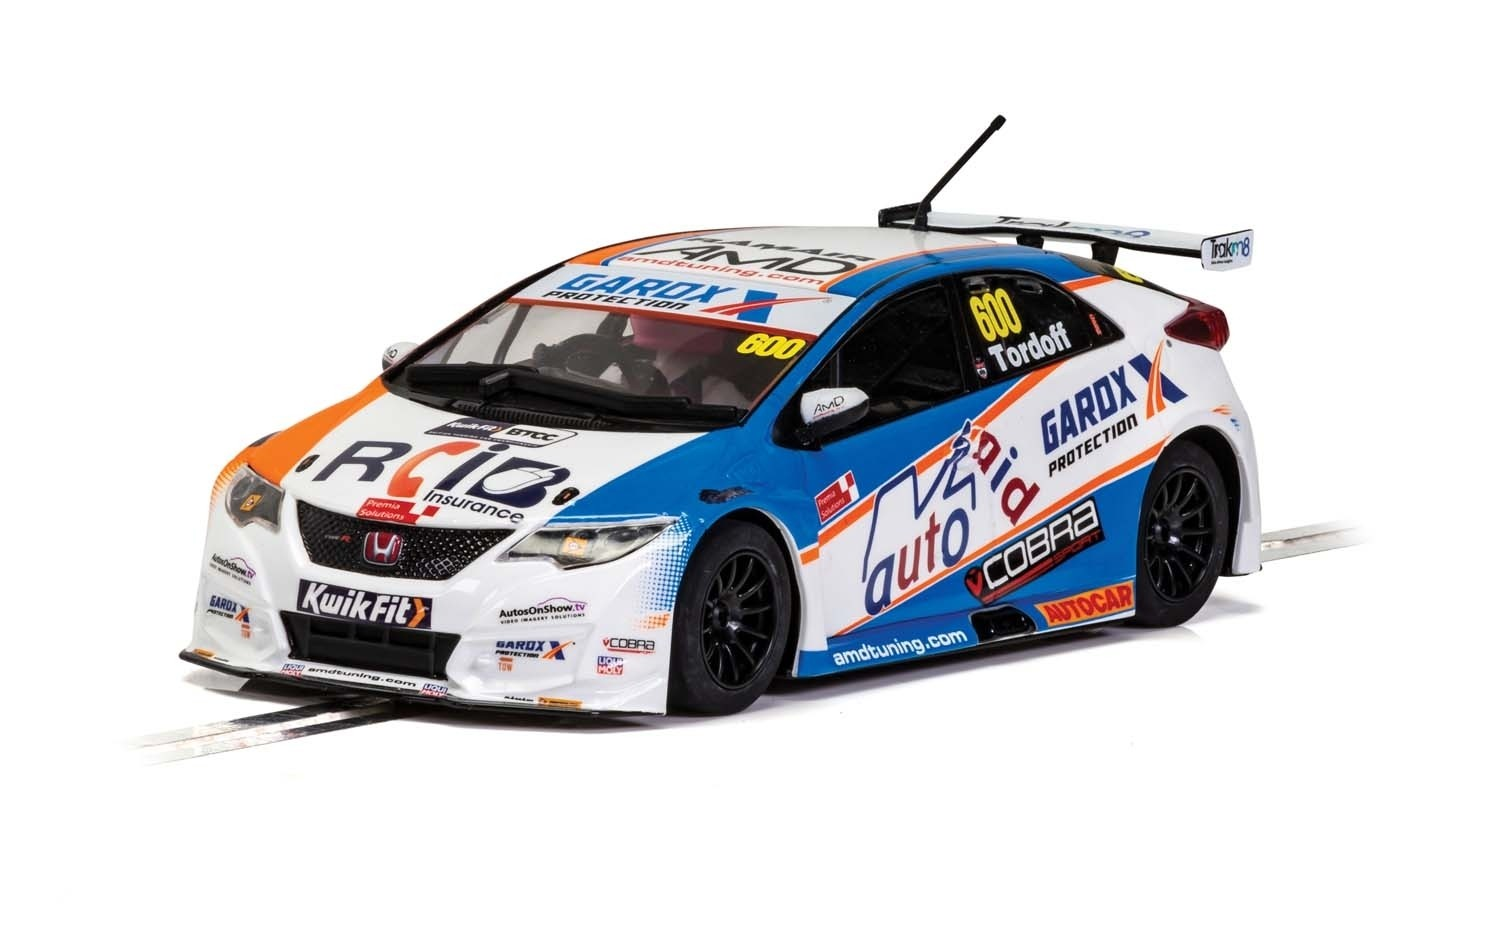 C4144 Scalextric Honda Civic Type R, BTCC 2019, Sam Tordoff